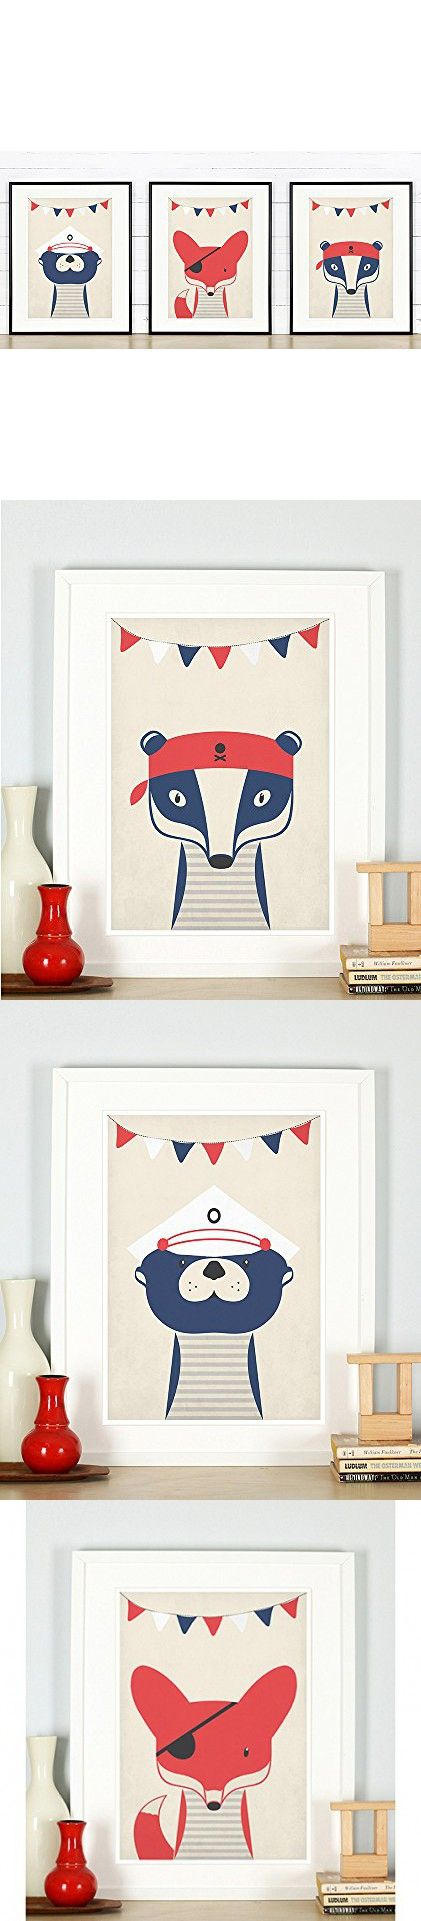 Nursery decor, pirate animals, badger, fox, otter, animals for kids, pirates, sailor animals, nautical theme, retro art print, A3 set